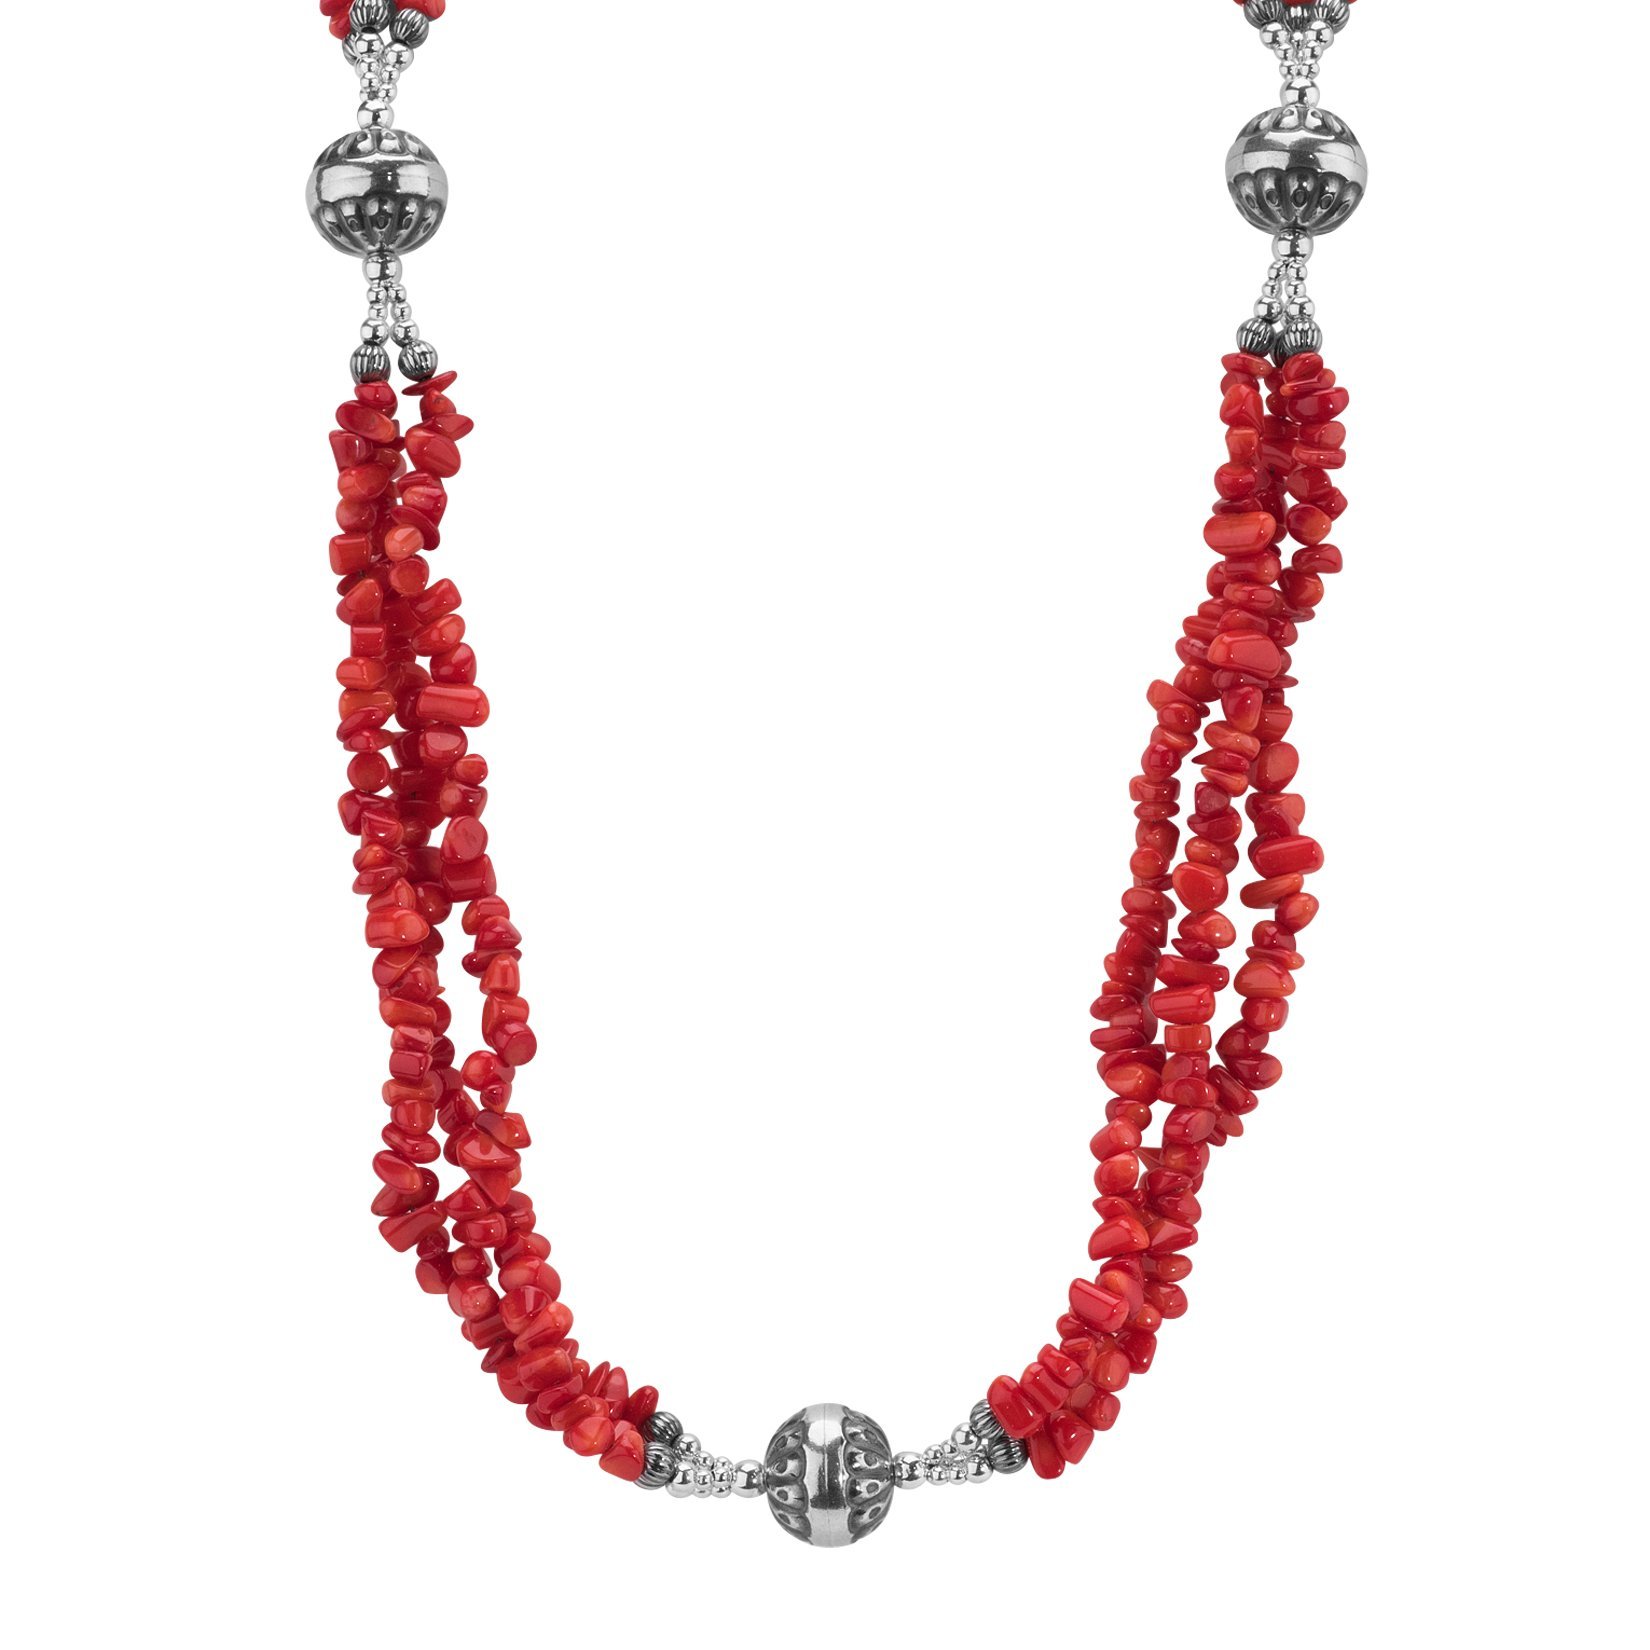 American West Jewelry Sterling Silver Red Coral Three-Strand Necklace, 36''